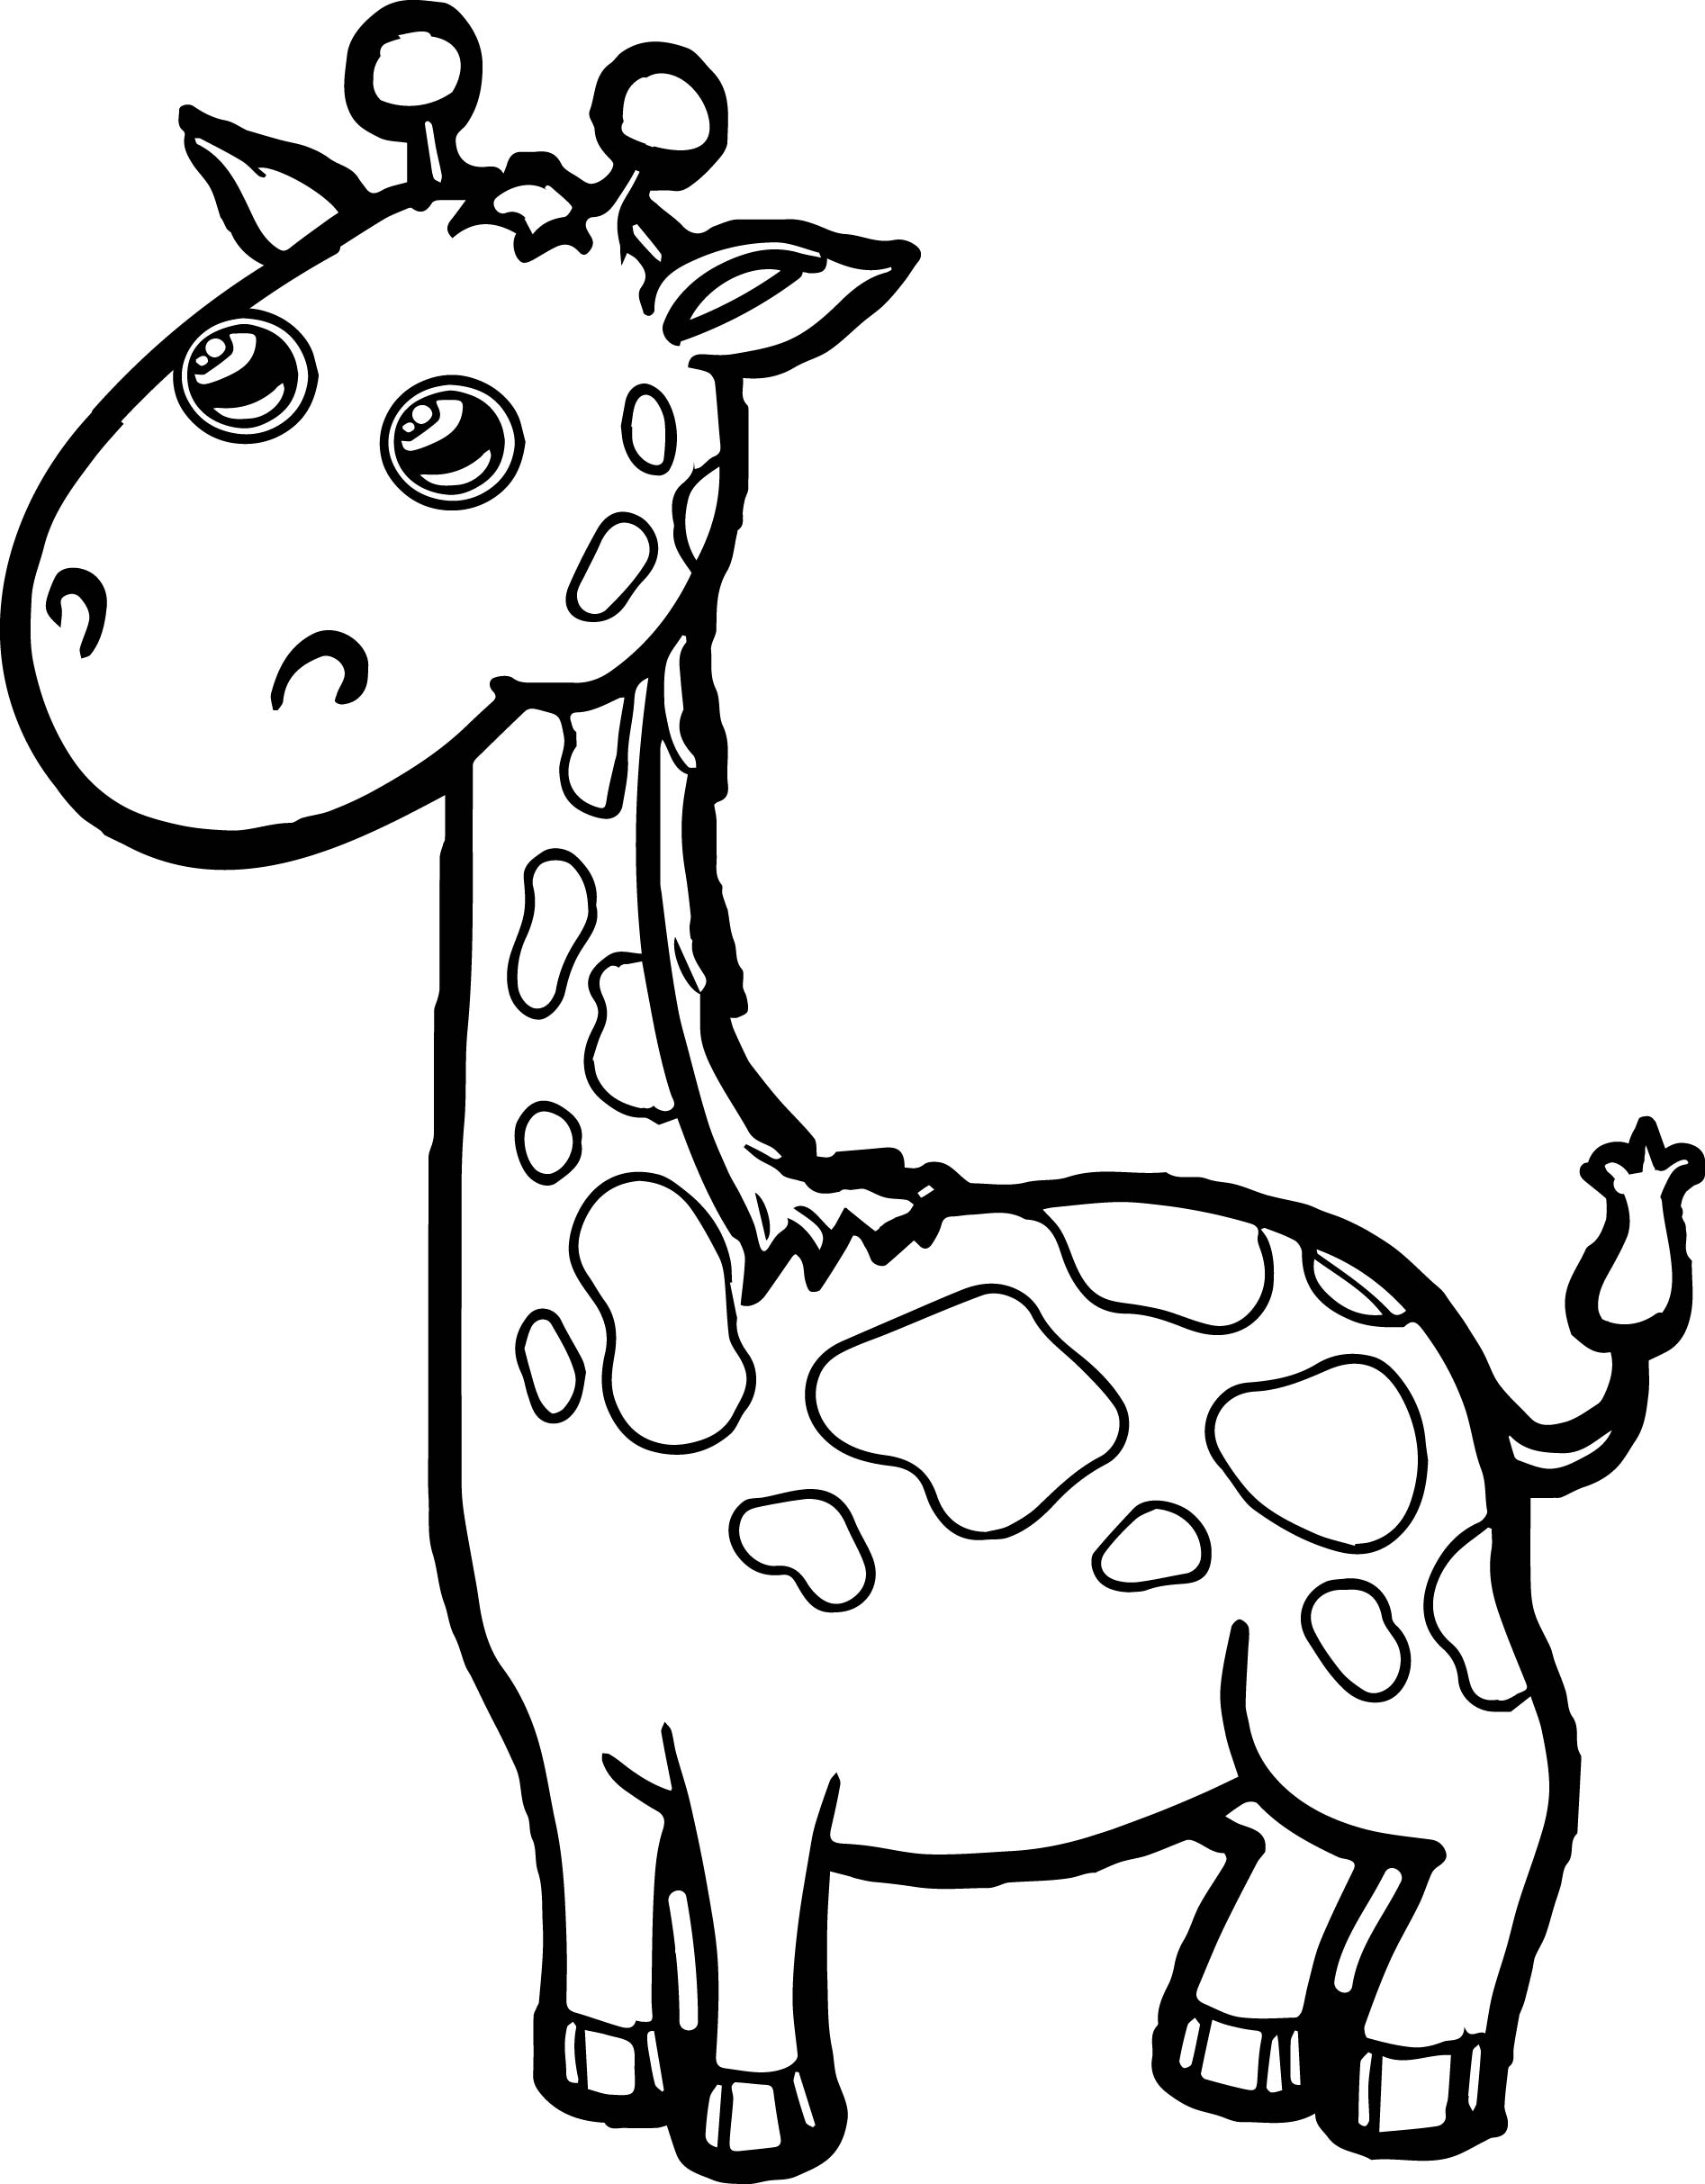 baby giraffe free coloring pages of animals coloring states clipart skate clipart svg